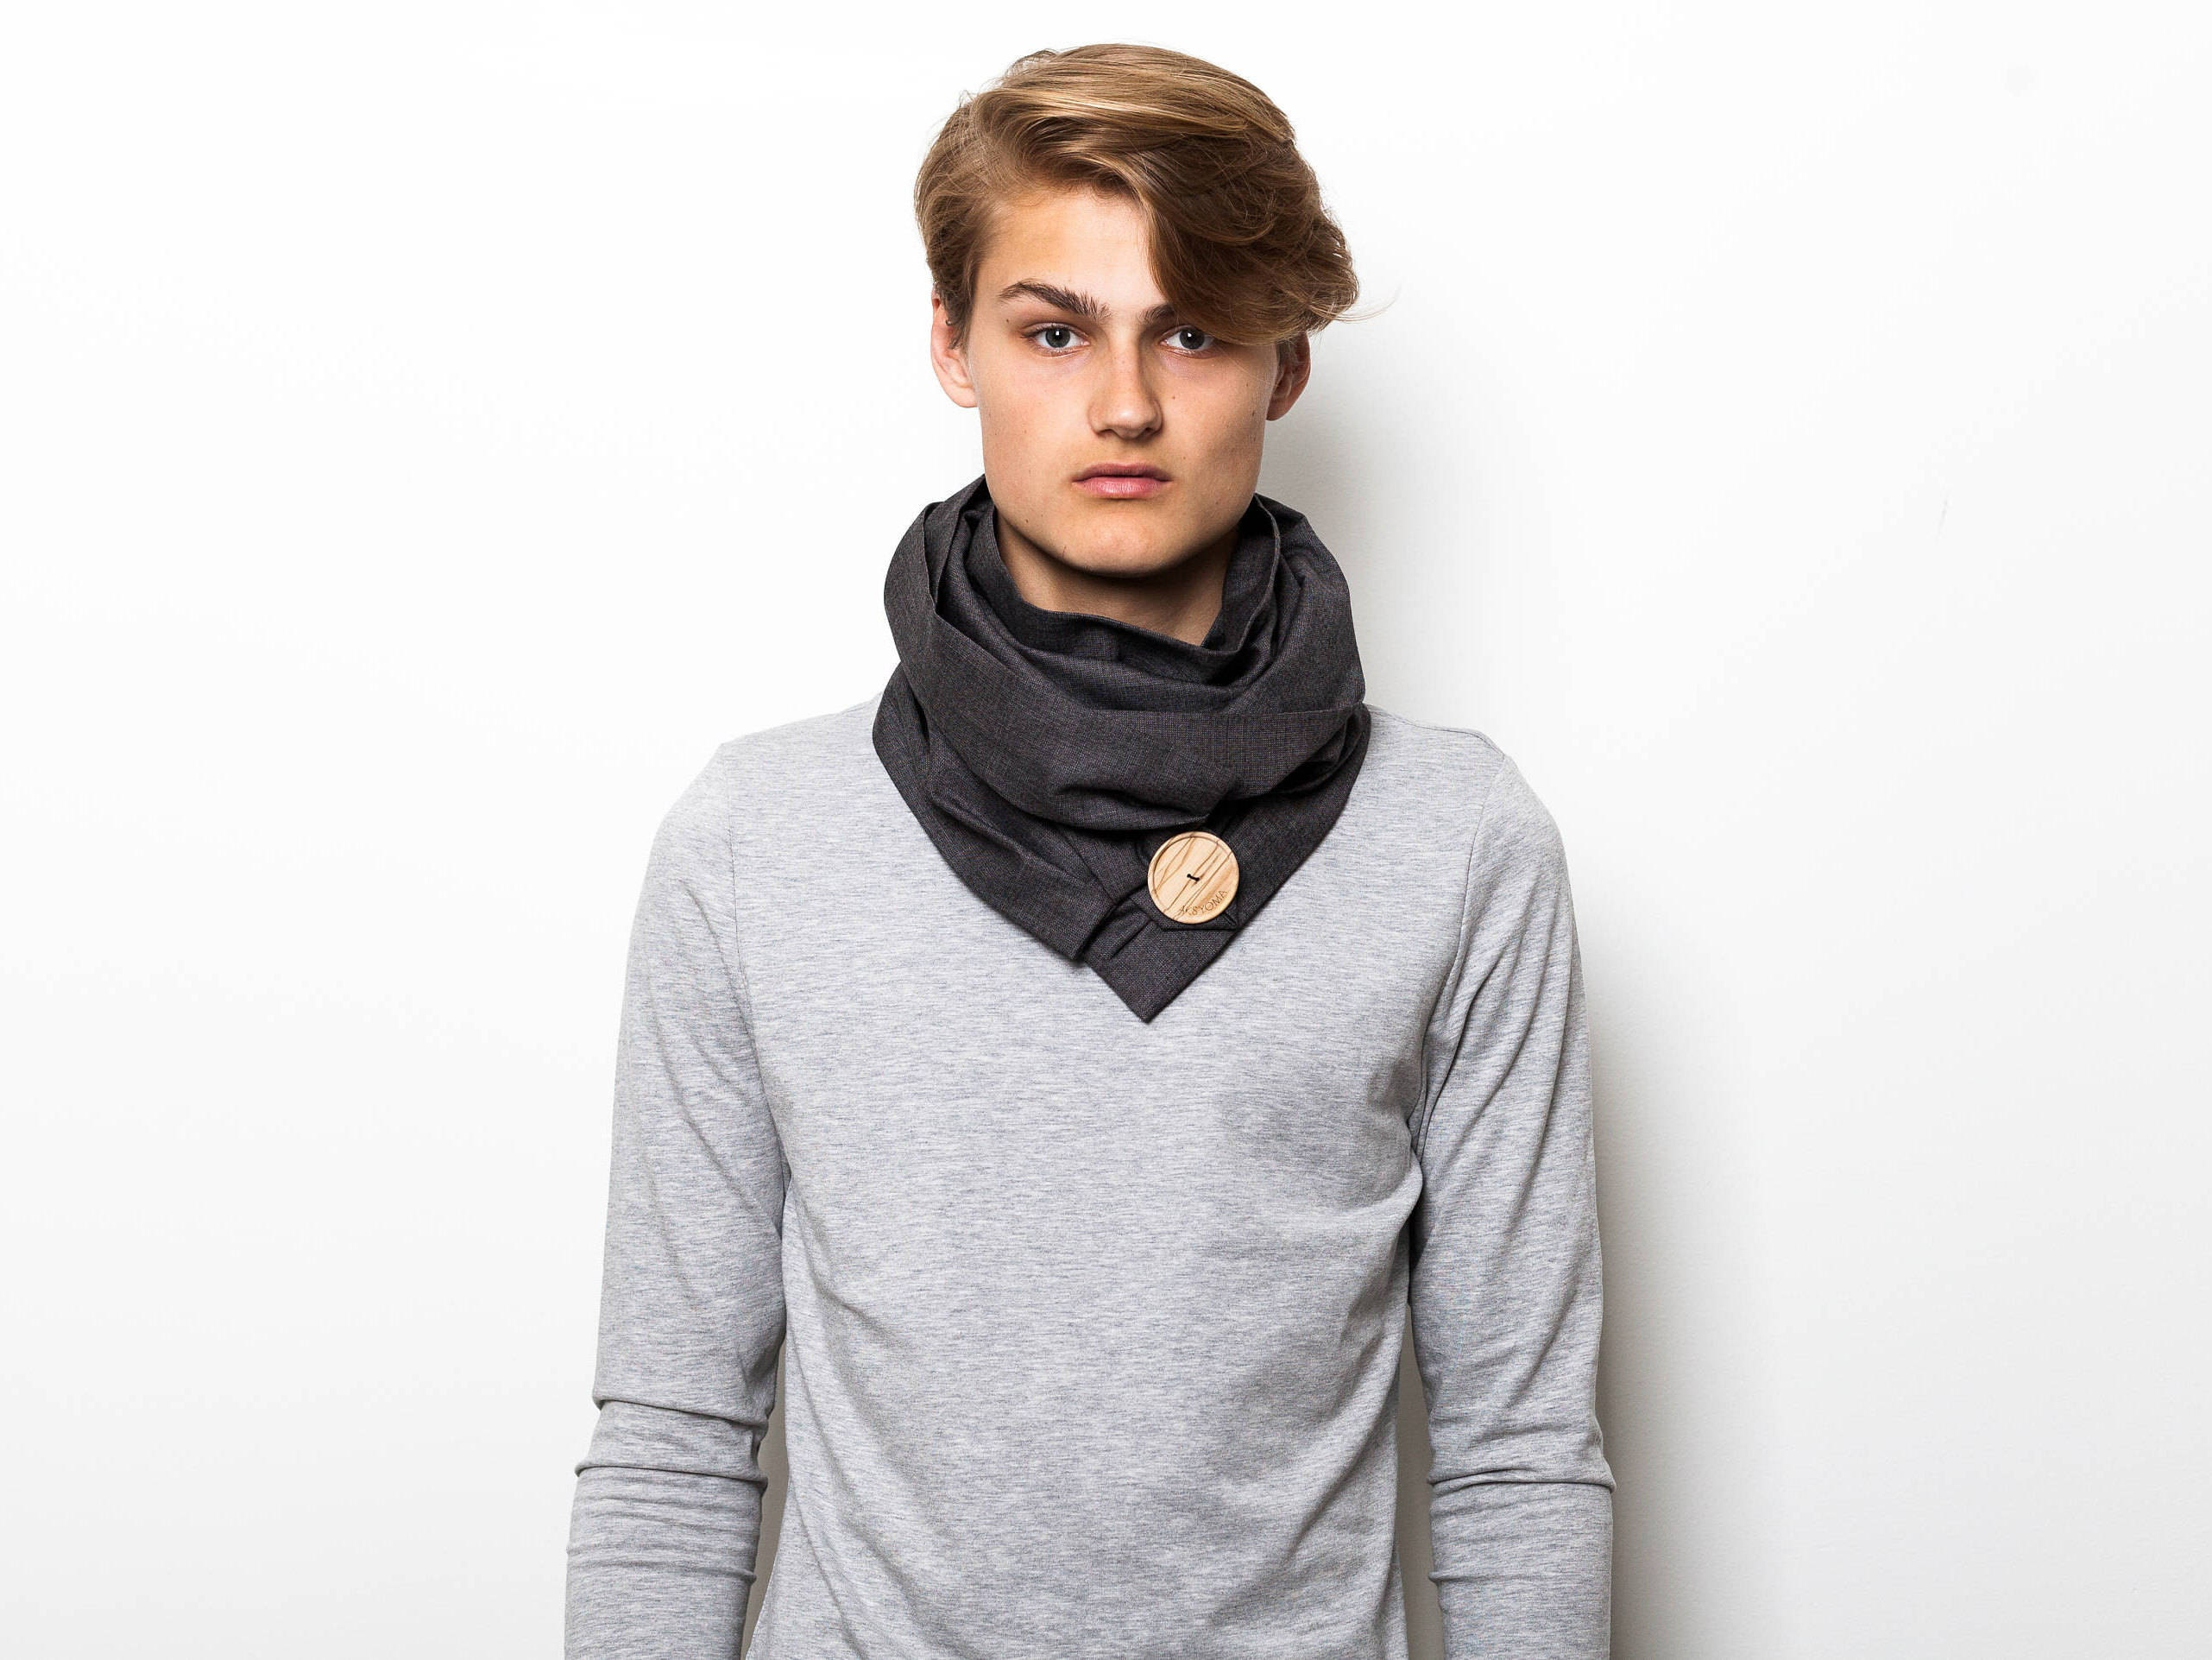 au gift listing boyfriend infinity scarf mens for husband burning il man gifts men festival kbrp